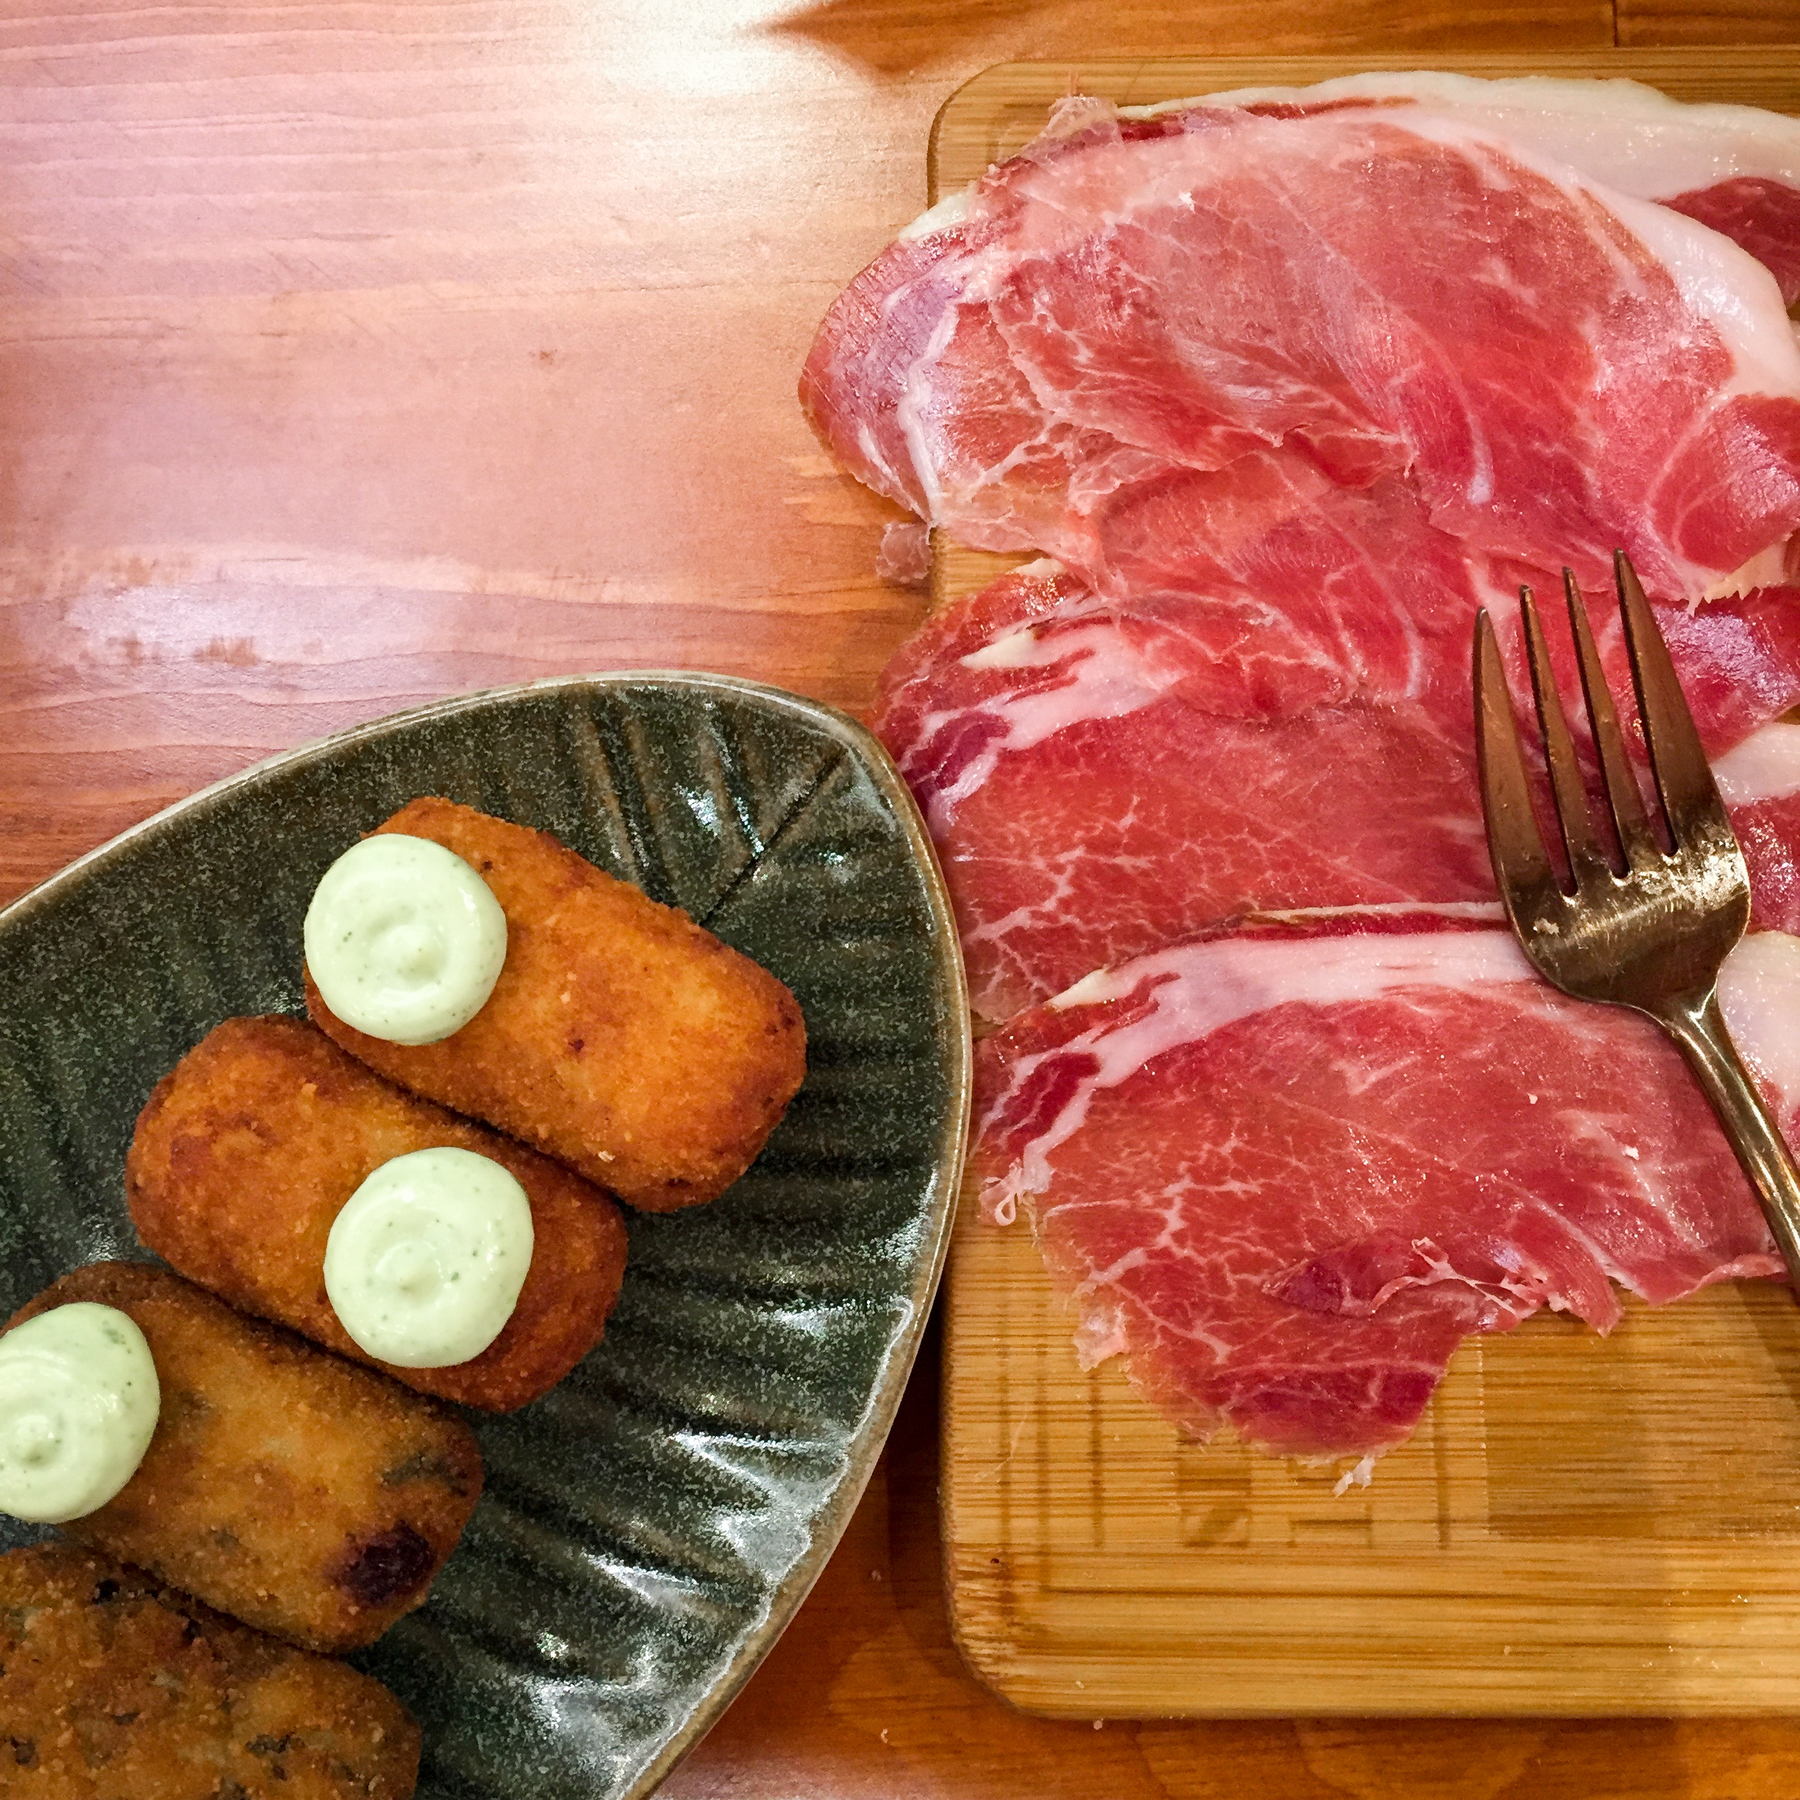 Croquettes and Iberian Ham (which I learned cures for two years before serving)